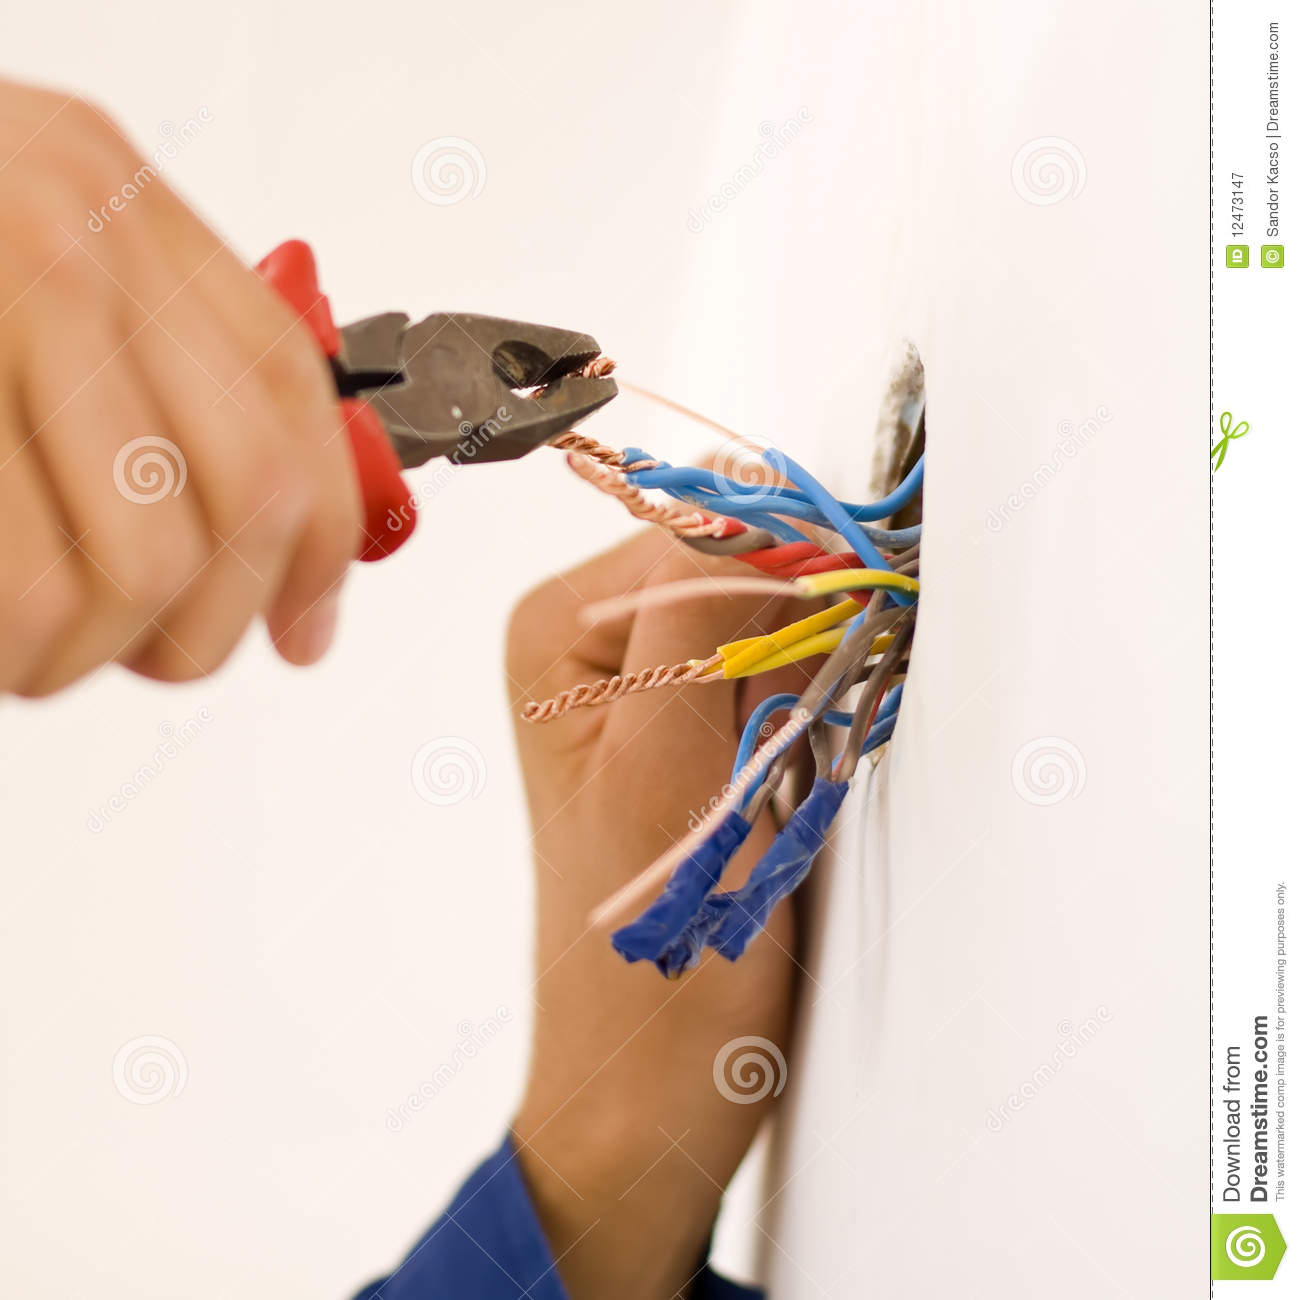 Handyman Working Closeup Stock Image Of Electric 12473147 Copper Electrical Wire Ductor Pvc Insulated An Electrician Binding Wires Together And Sealing Them With Insulation Stripe